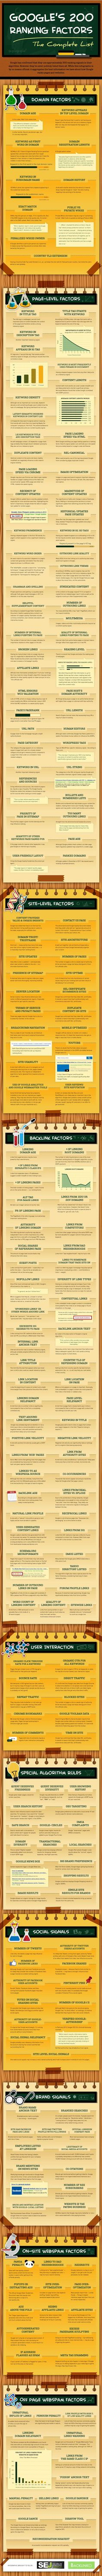 The Complete List of Googles 200 Ranking Factors [Infographic]